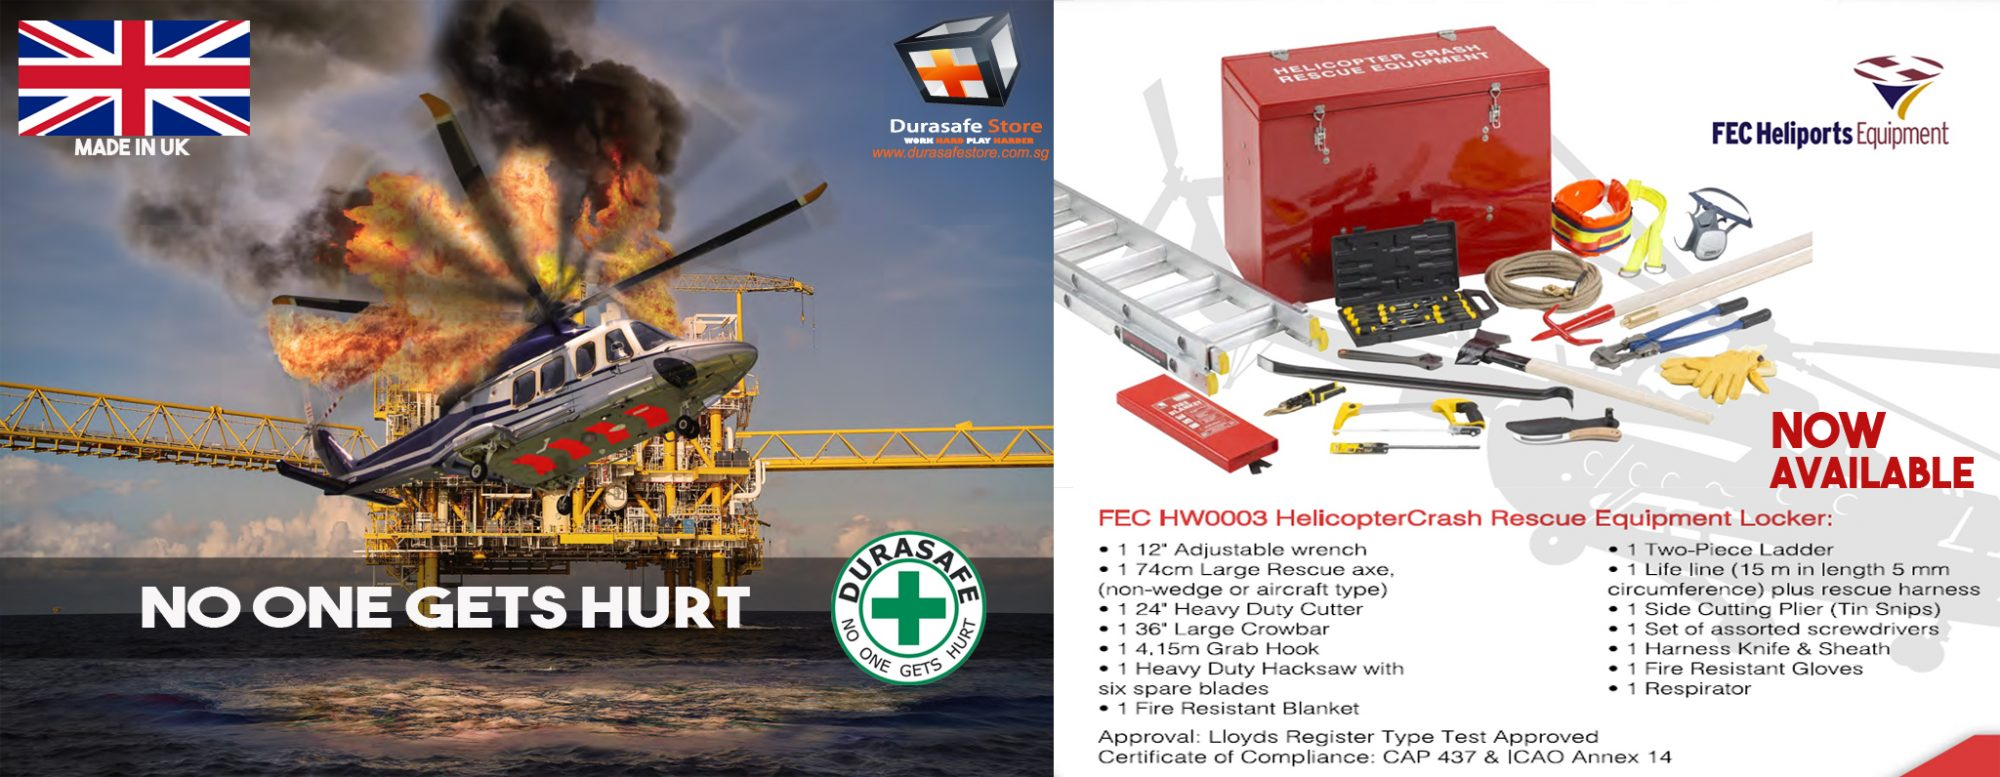 FEC Helicopter